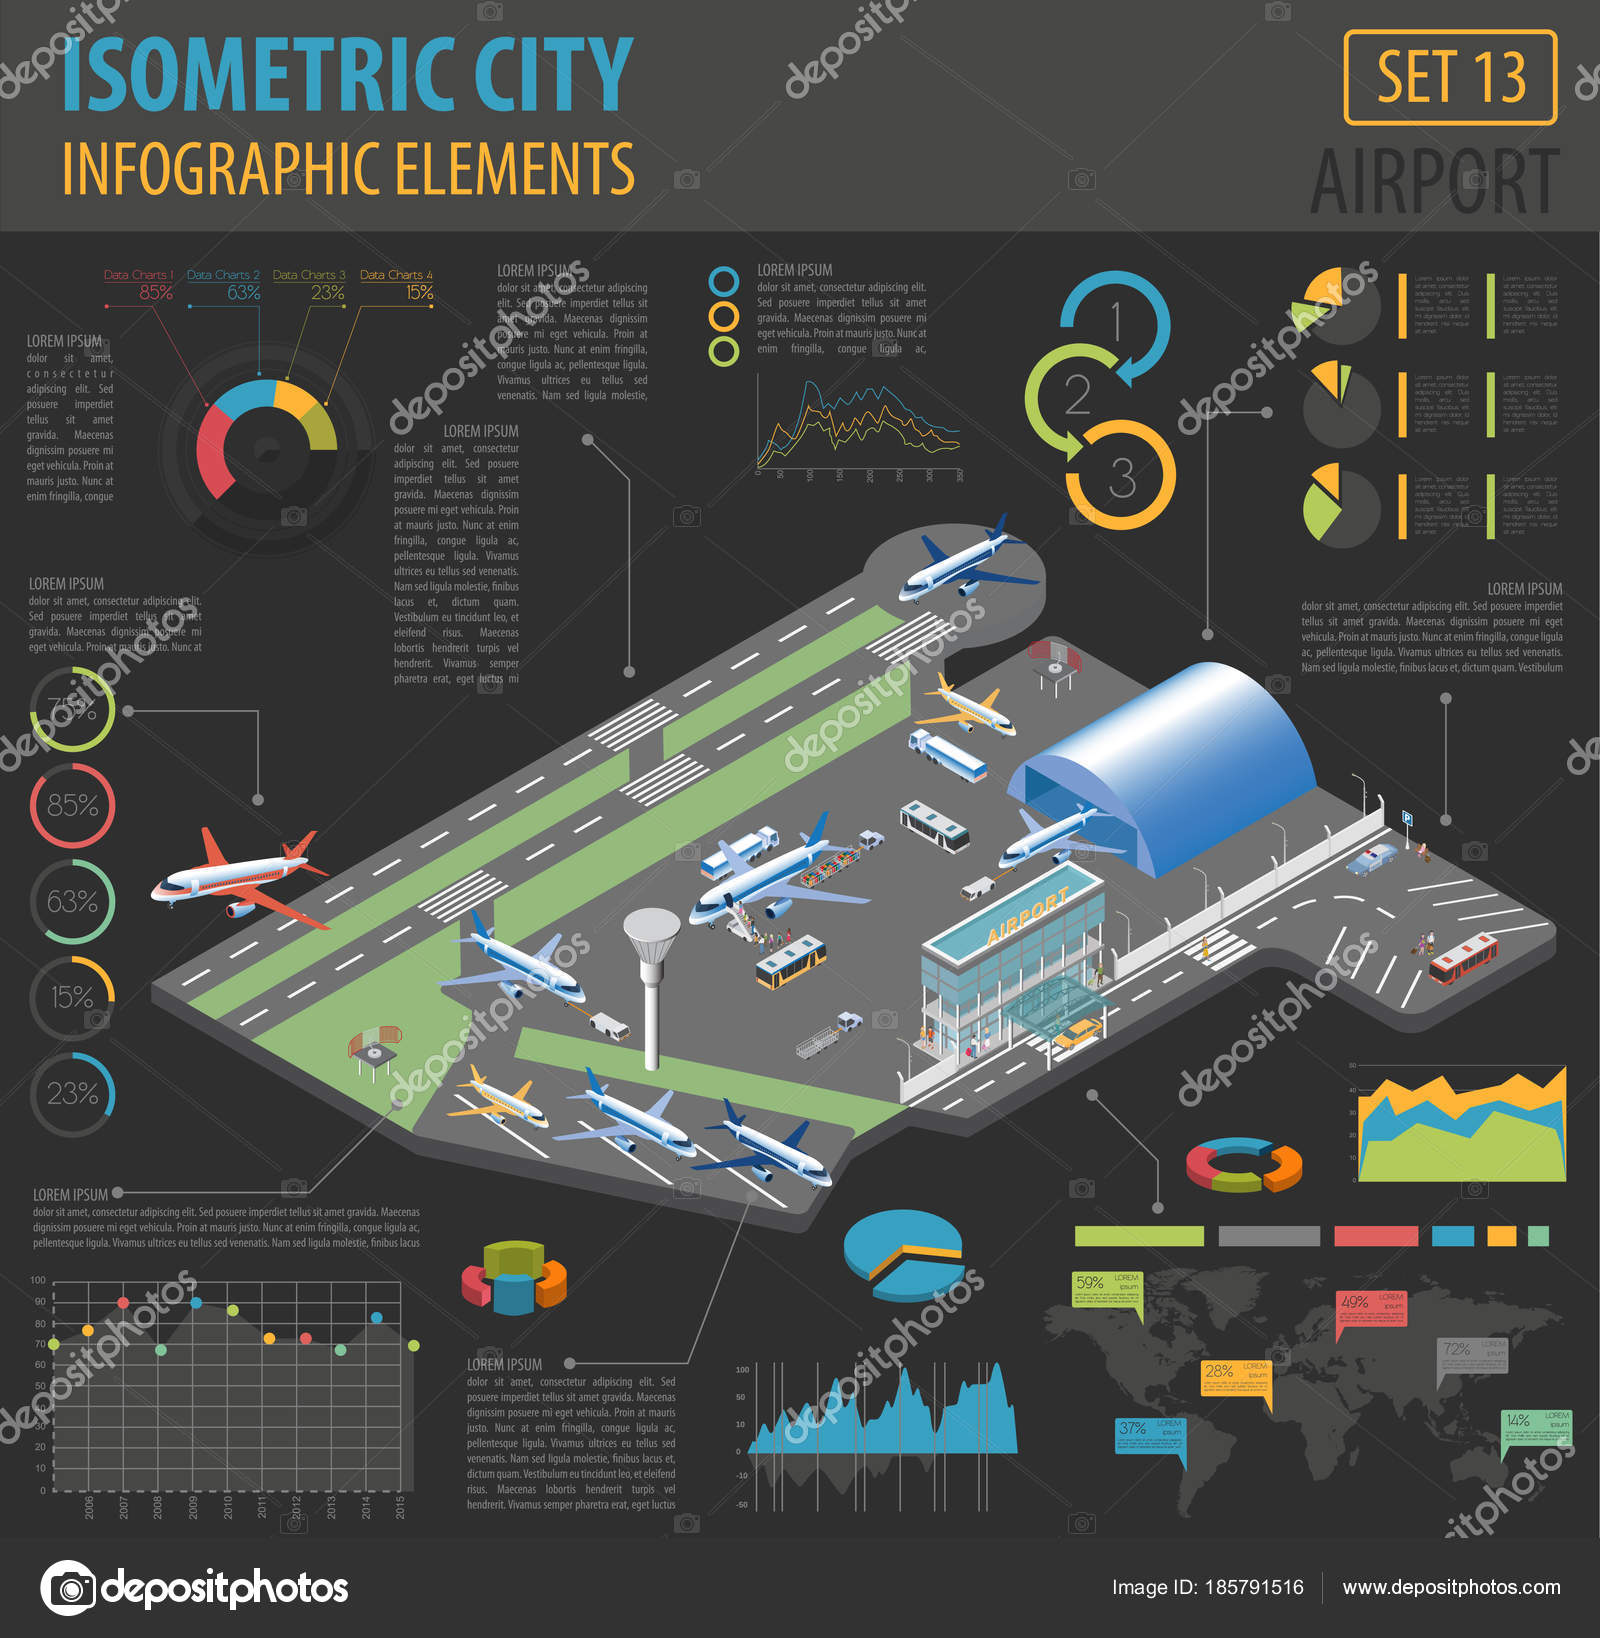 3d isometric airport and city map constructor elements isolated     3d isometric airport and city map constructor elements isolated on white   Build your own infographic collection  Vector illustration     Vector by  A7880S